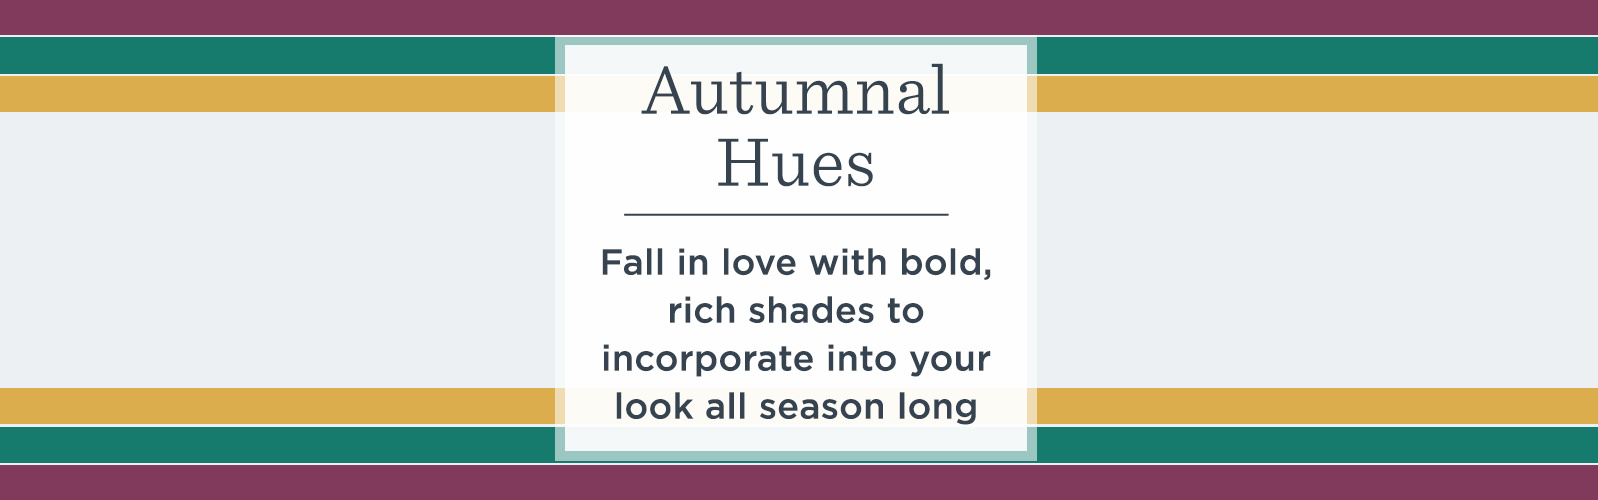 Autumnal Hues. Fall in love with bold, rich shades to incorporate into your look all season long